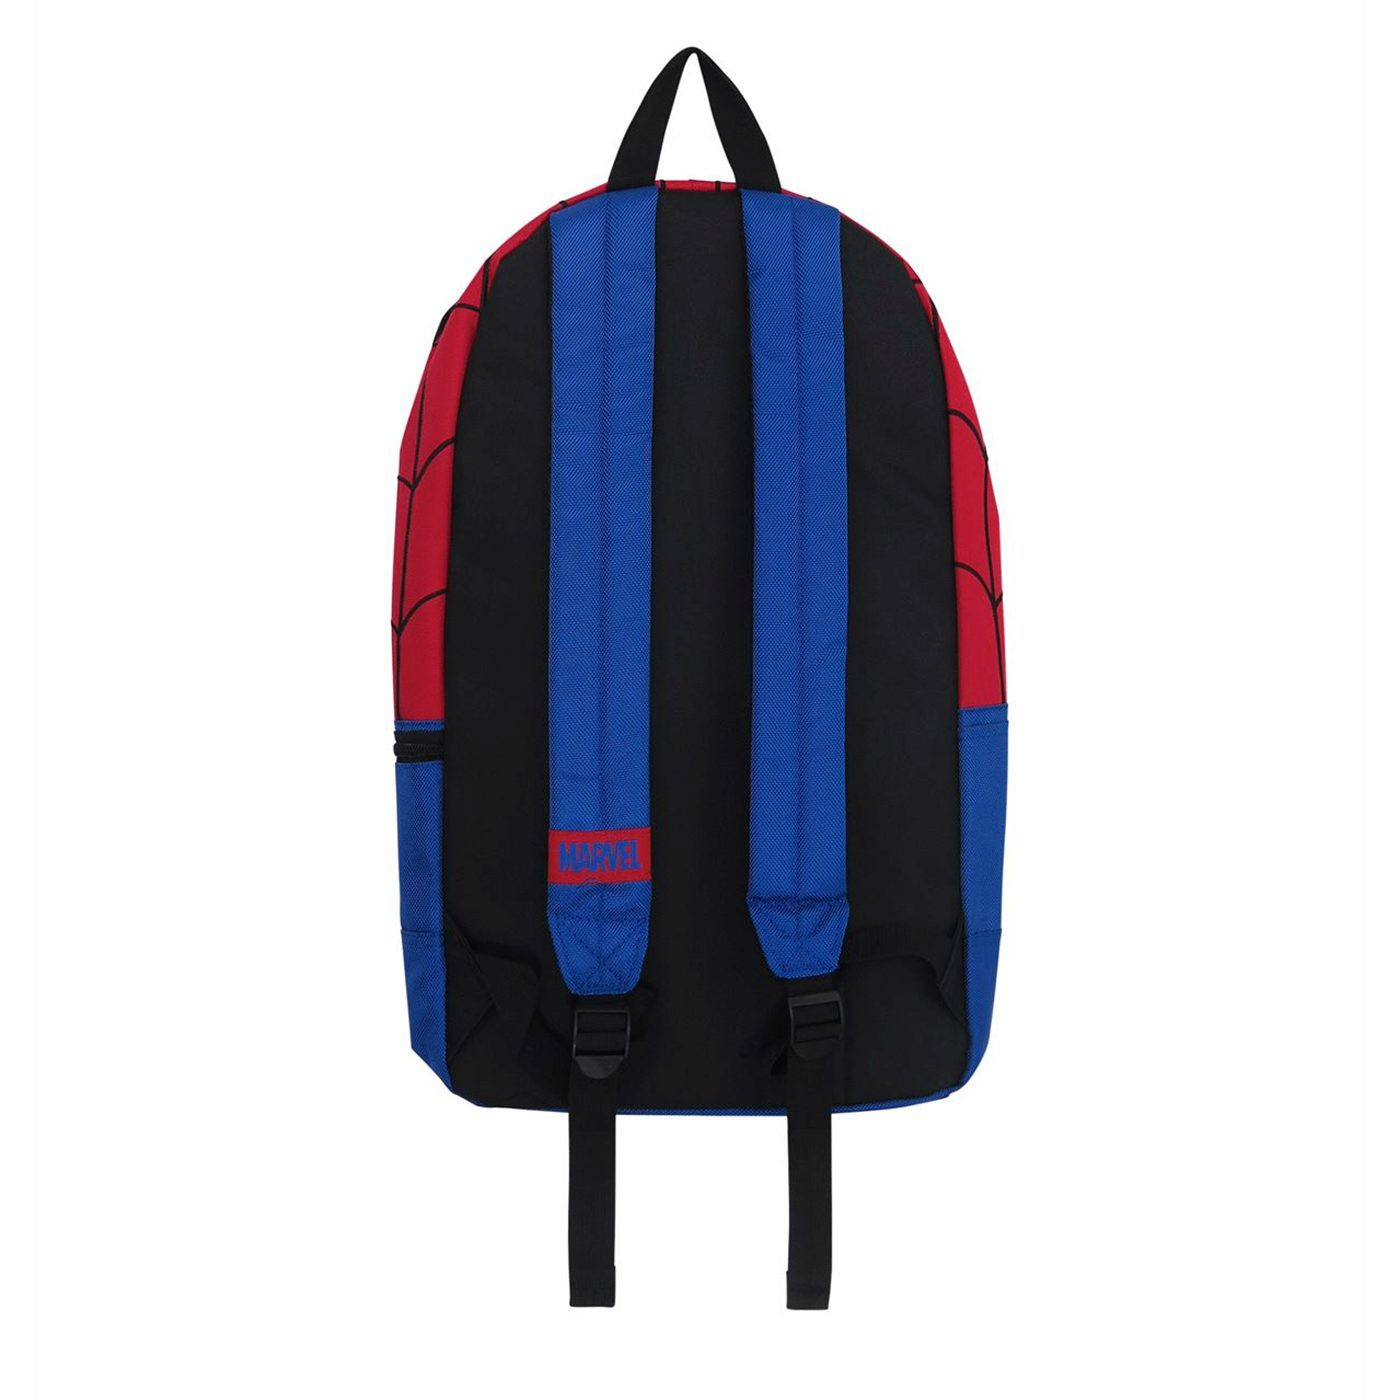 Spider-Man Big Face Laptop Backpack